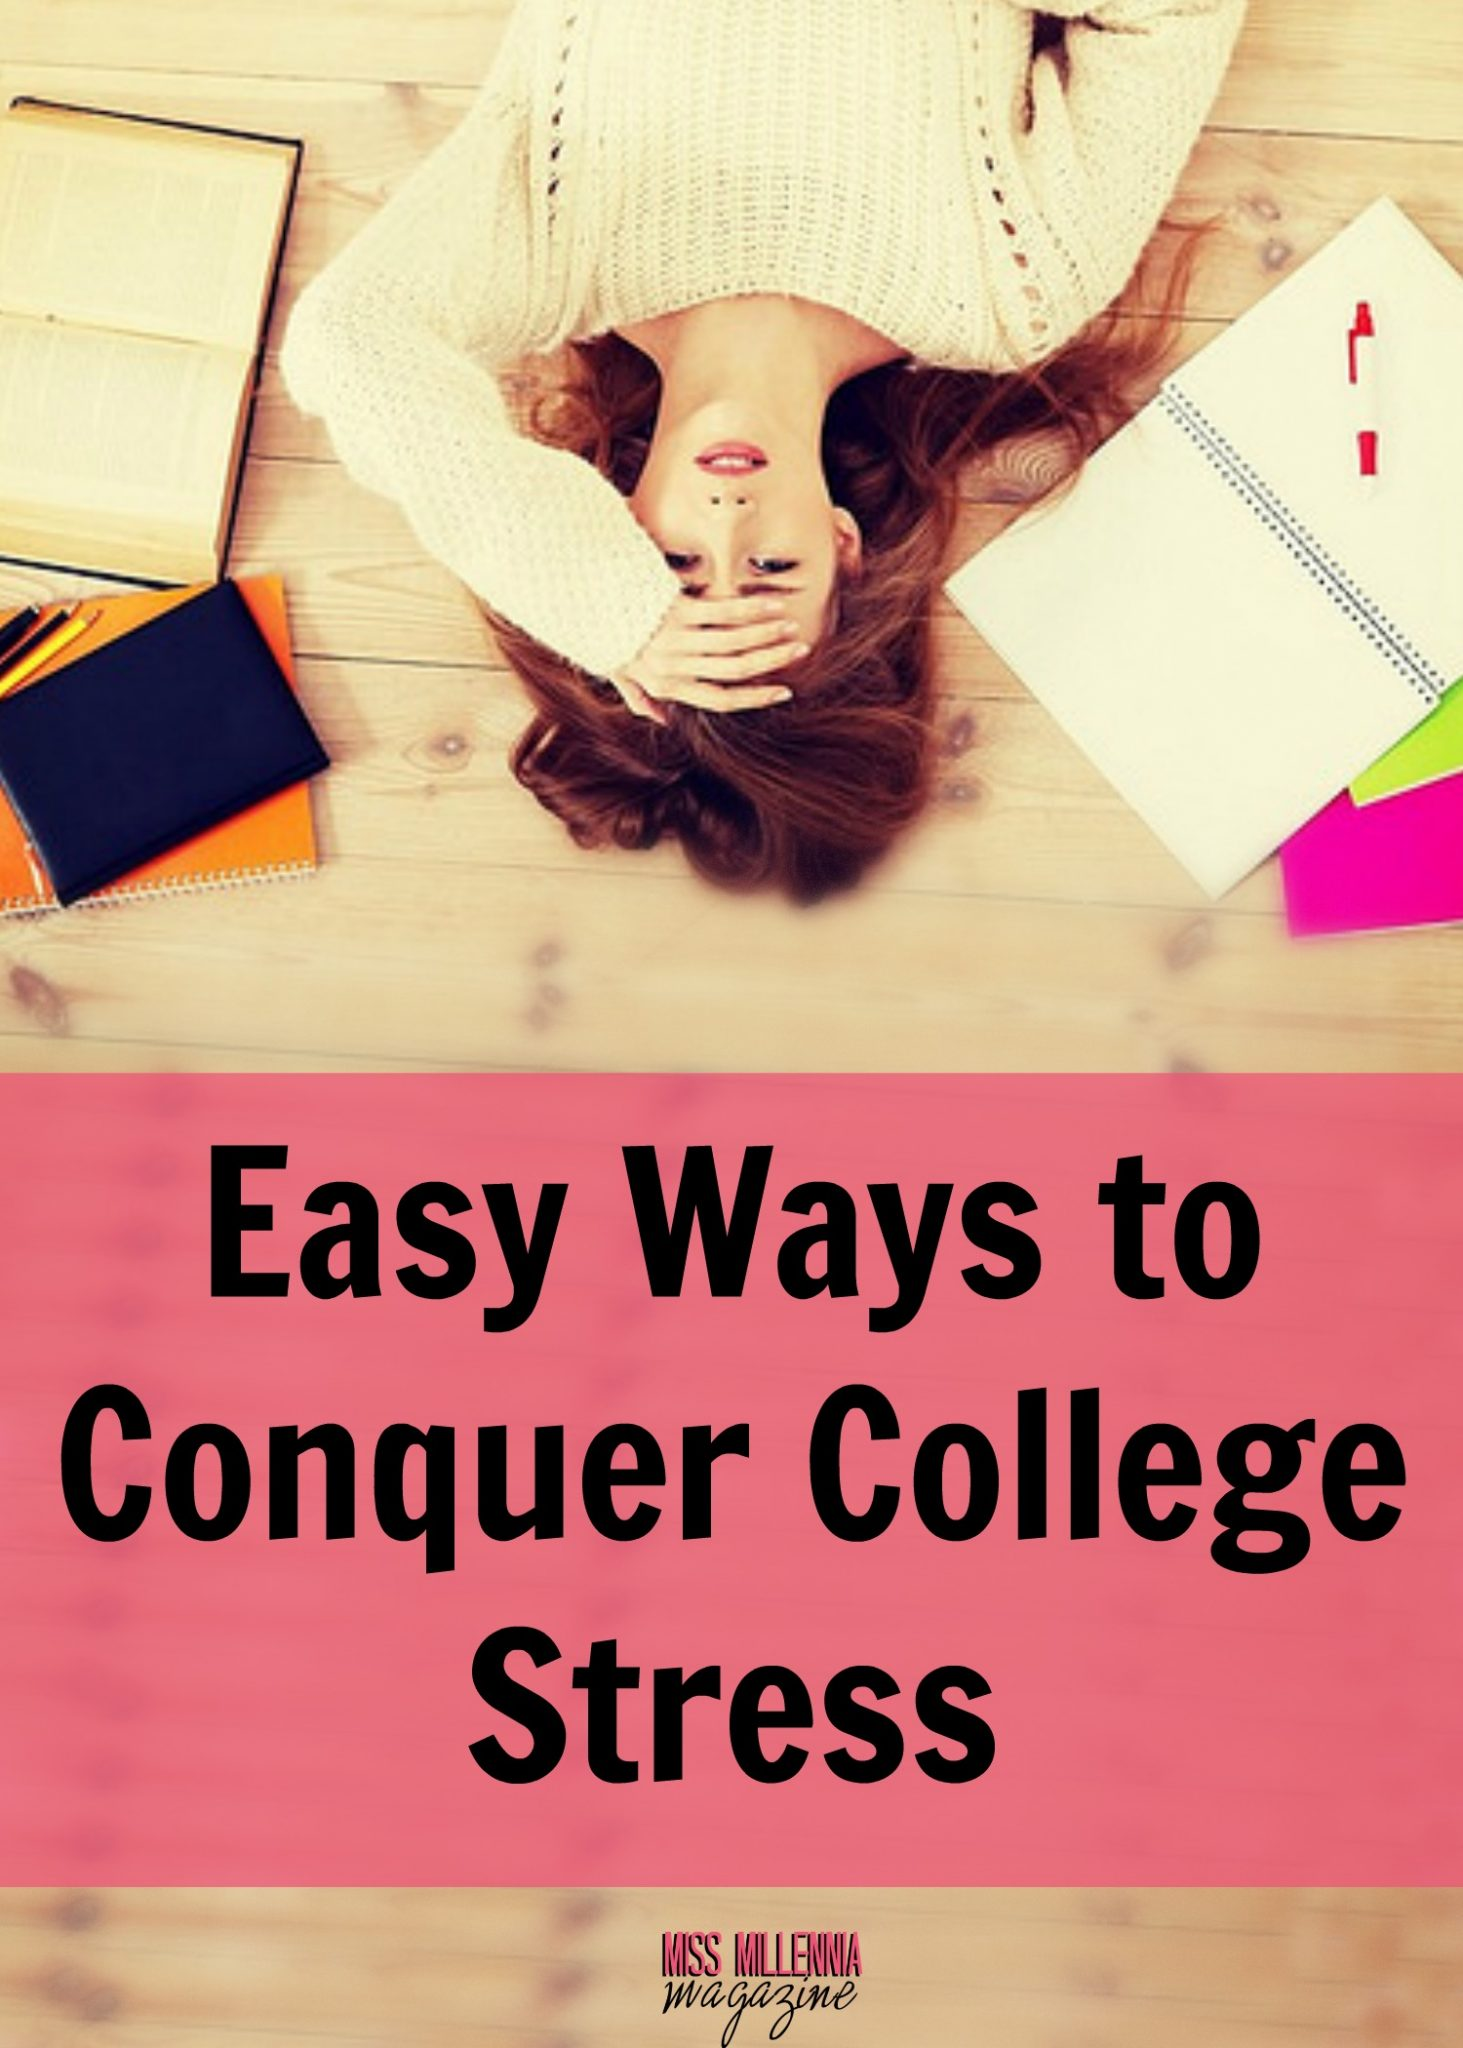 Easy ways to conquer college stress! @Amazon #PrimeStudent #CG